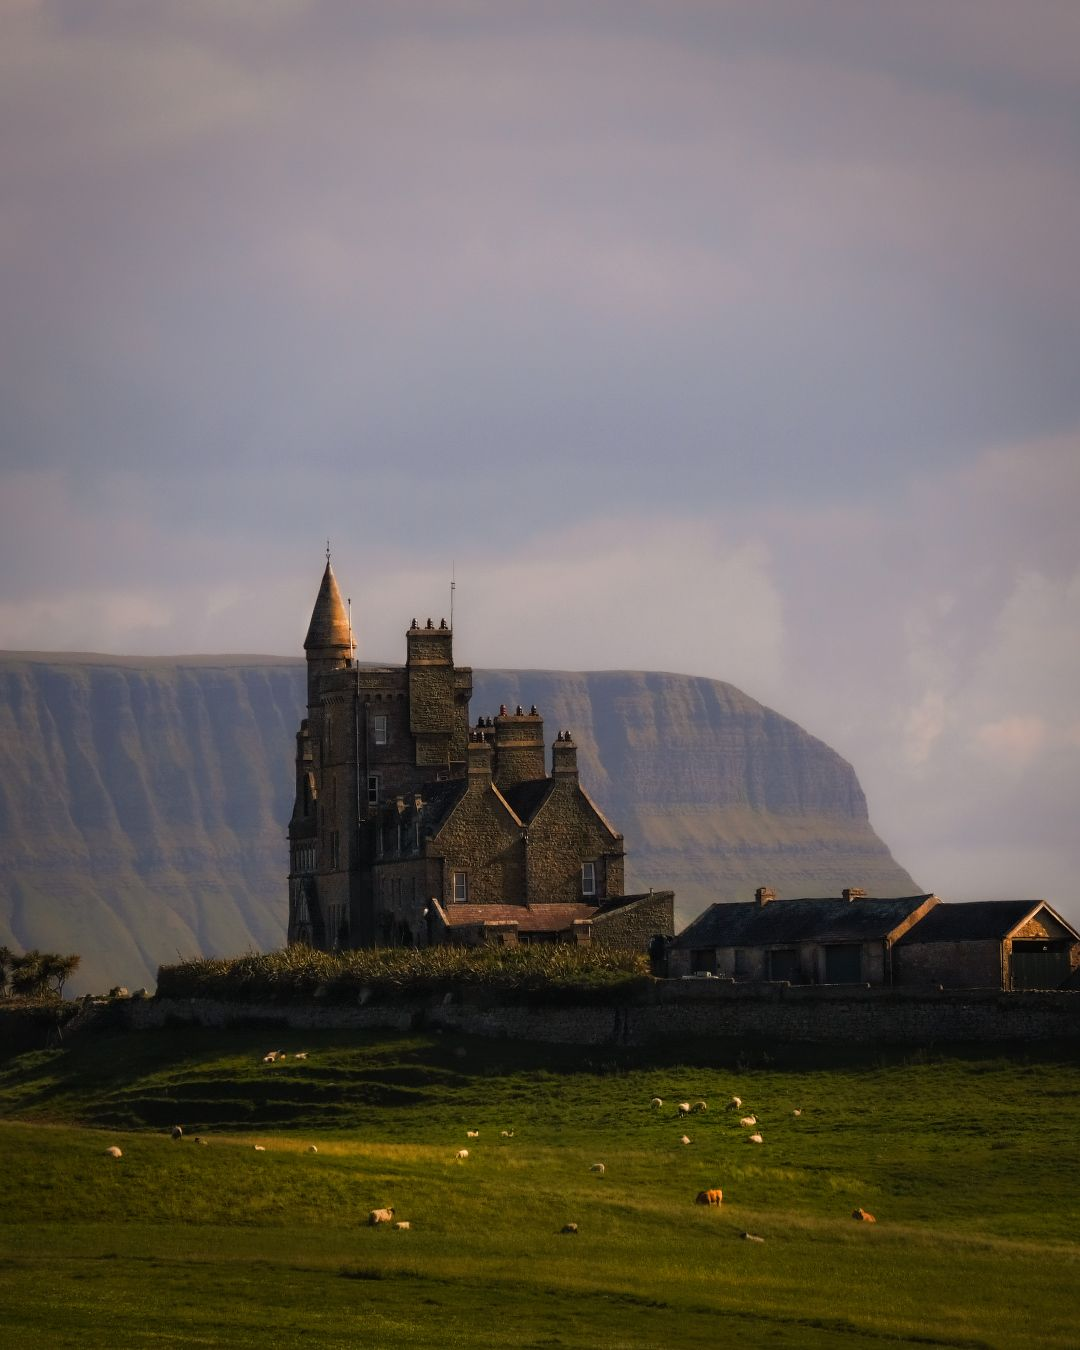 ...Classiebawn Castle... ireland castle classiebawn mullaghmore sligo wild atlantic way coast mountains nature architechture ancient old historical history building countryside rural sheep cow cattle grass fields meadows europe picturesque awe wonderful